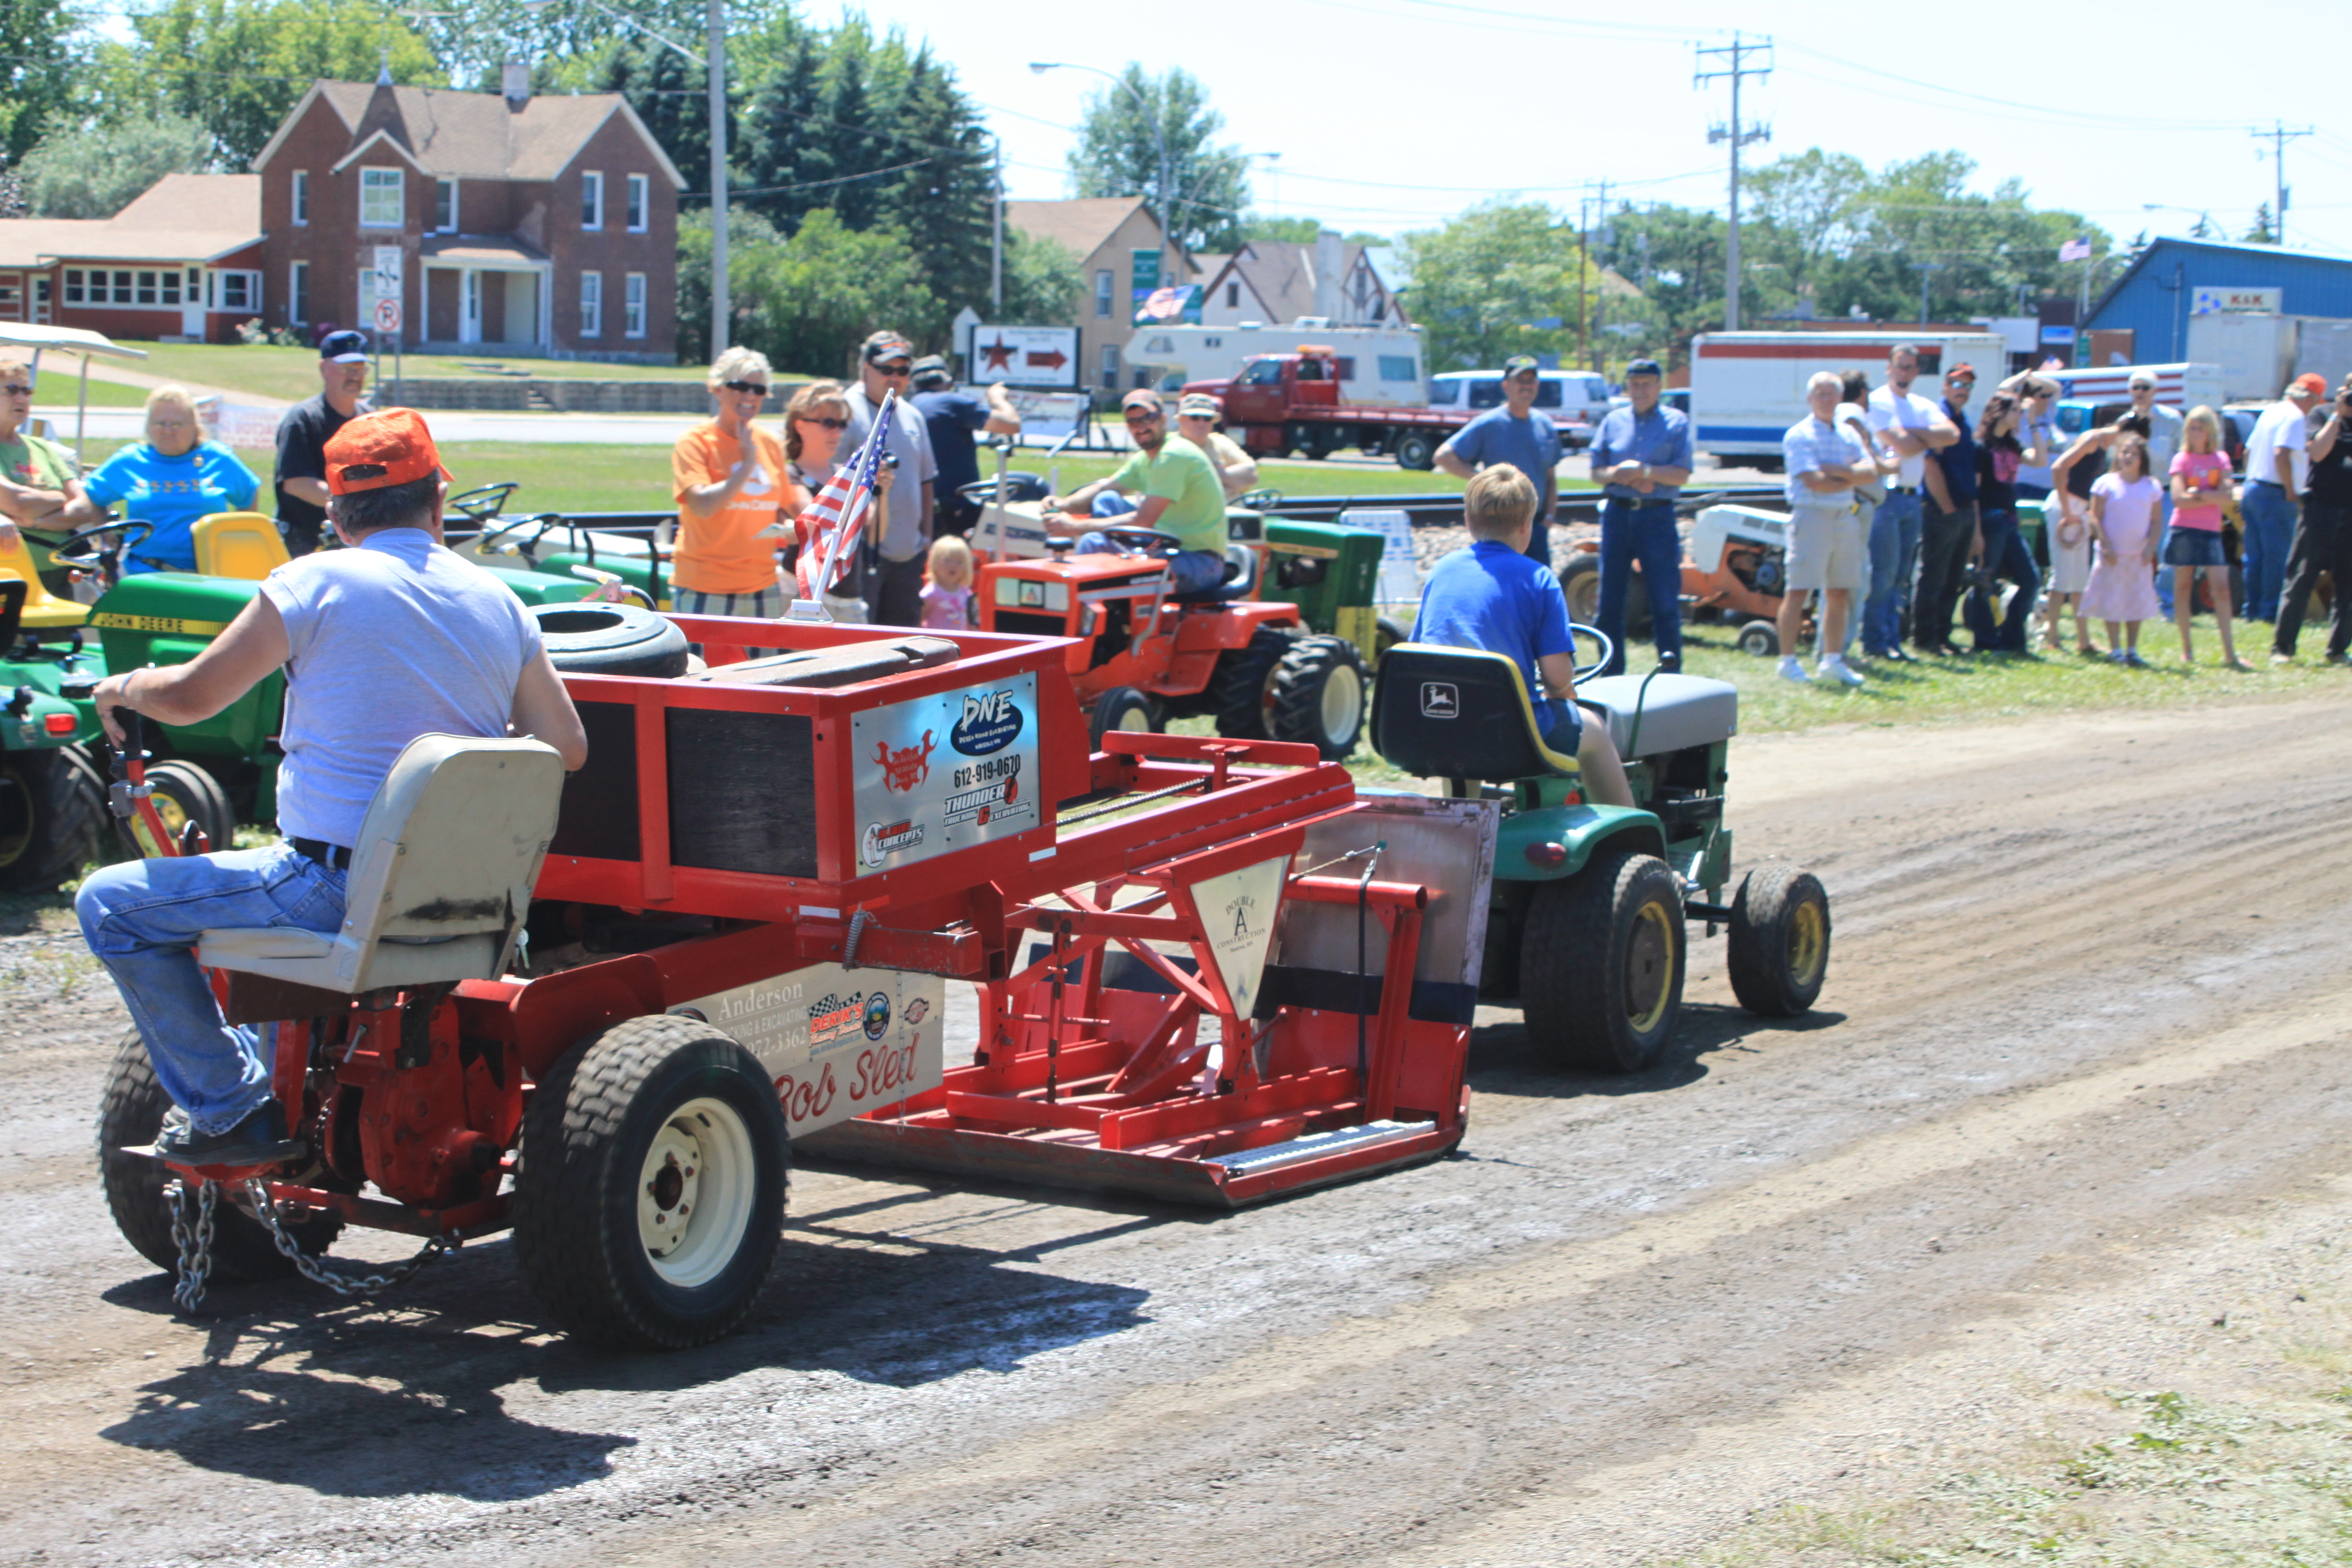 Garden Tractor Pullers : File garden tractor pulling sled g wikimedia commons